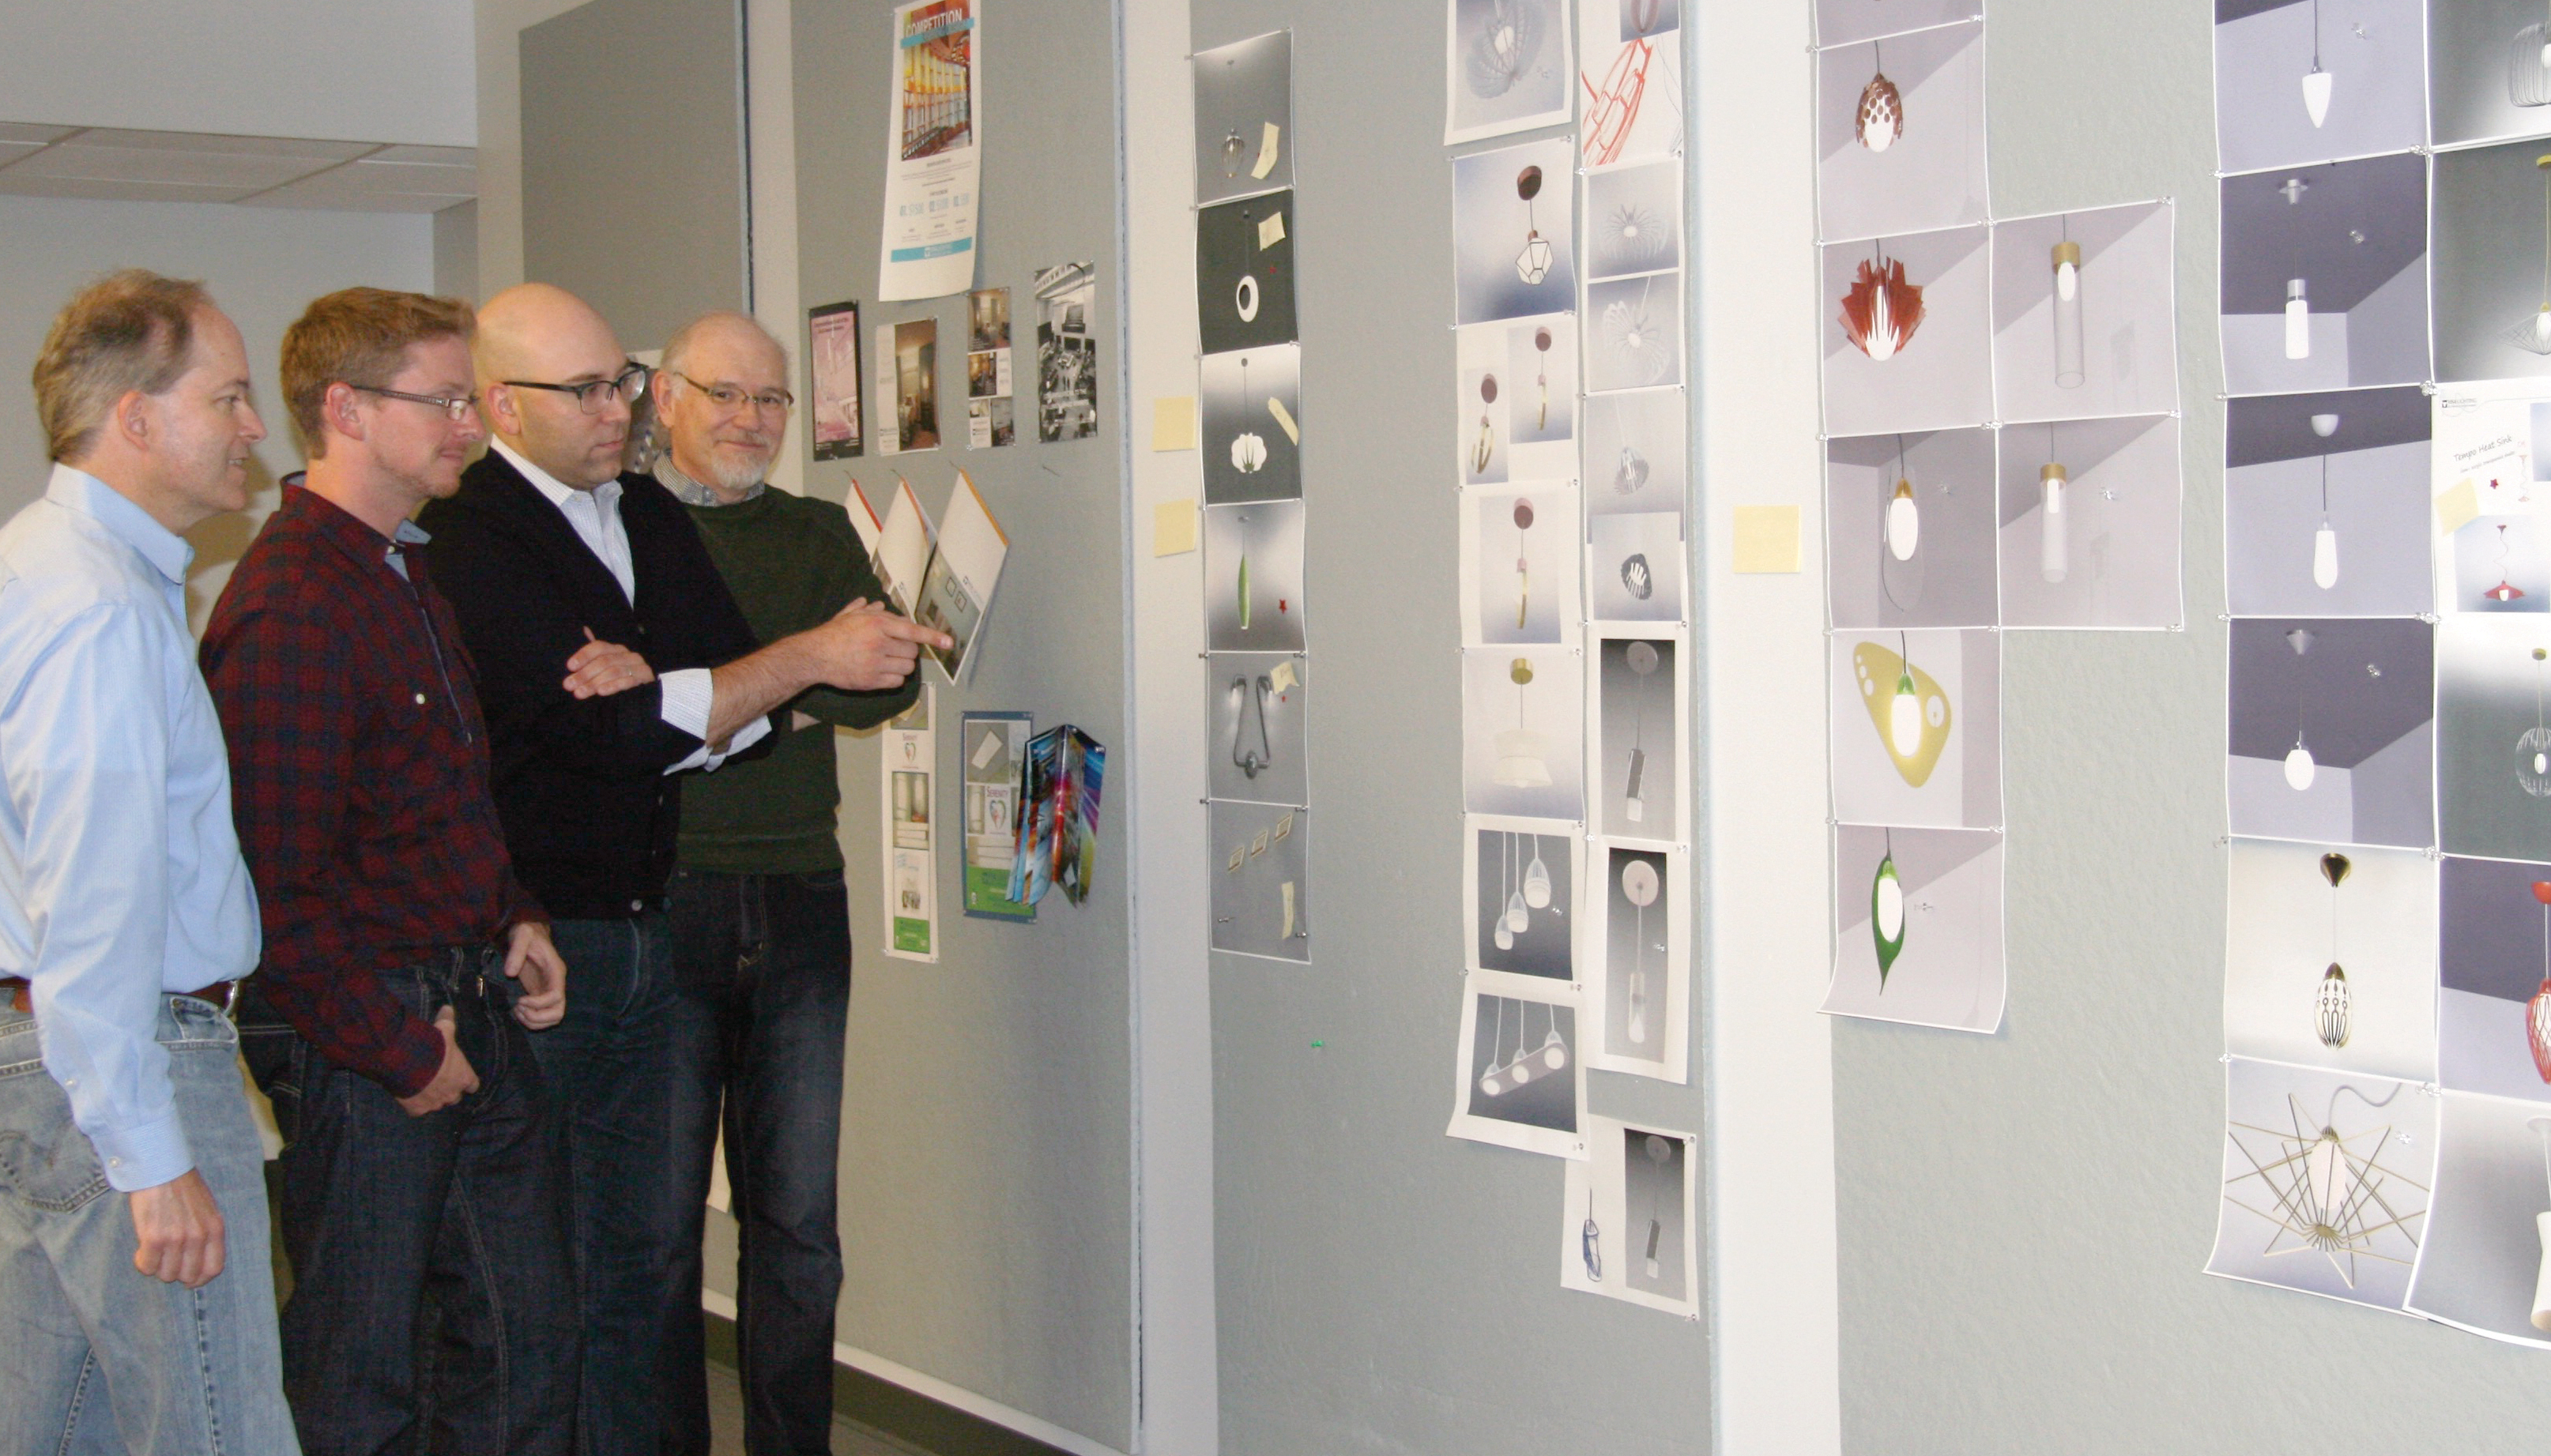 Product designers discuss upcoming light fixture designs.